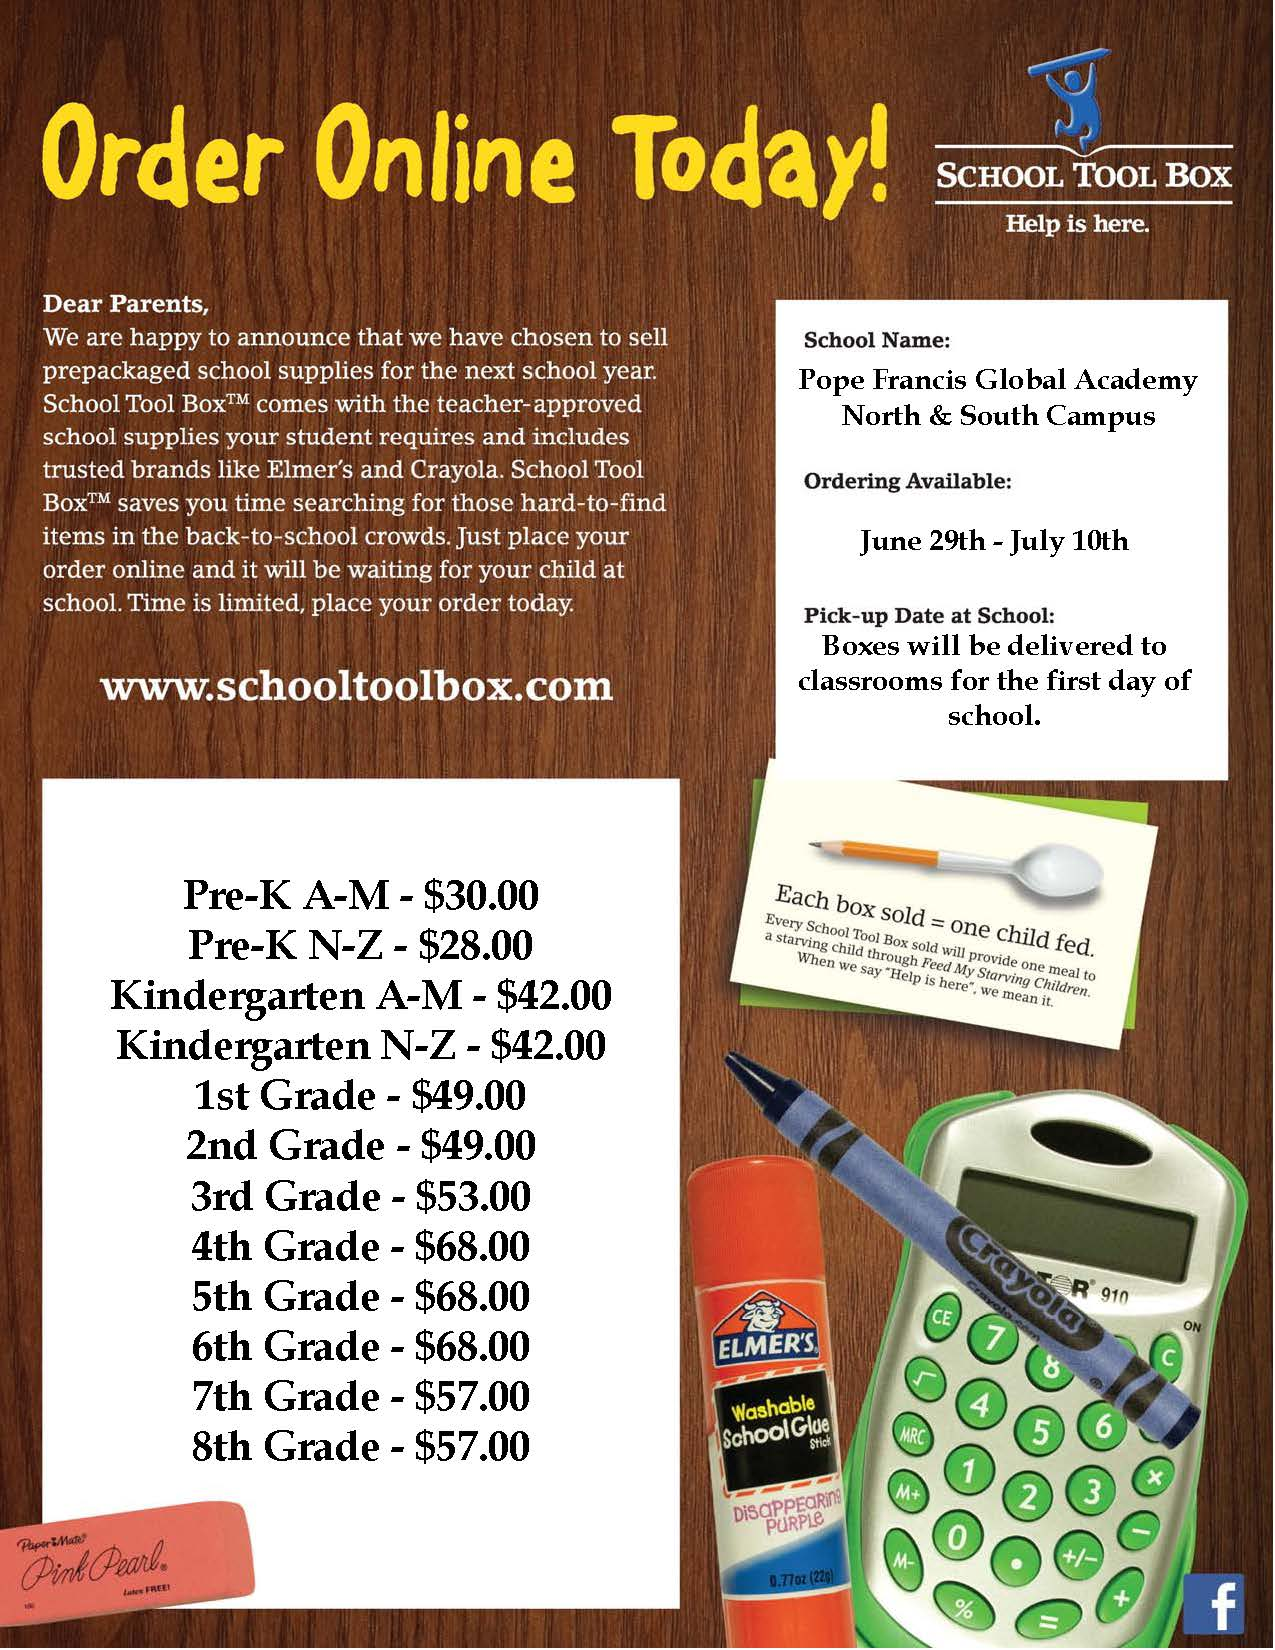 School tool box flyer.jpg